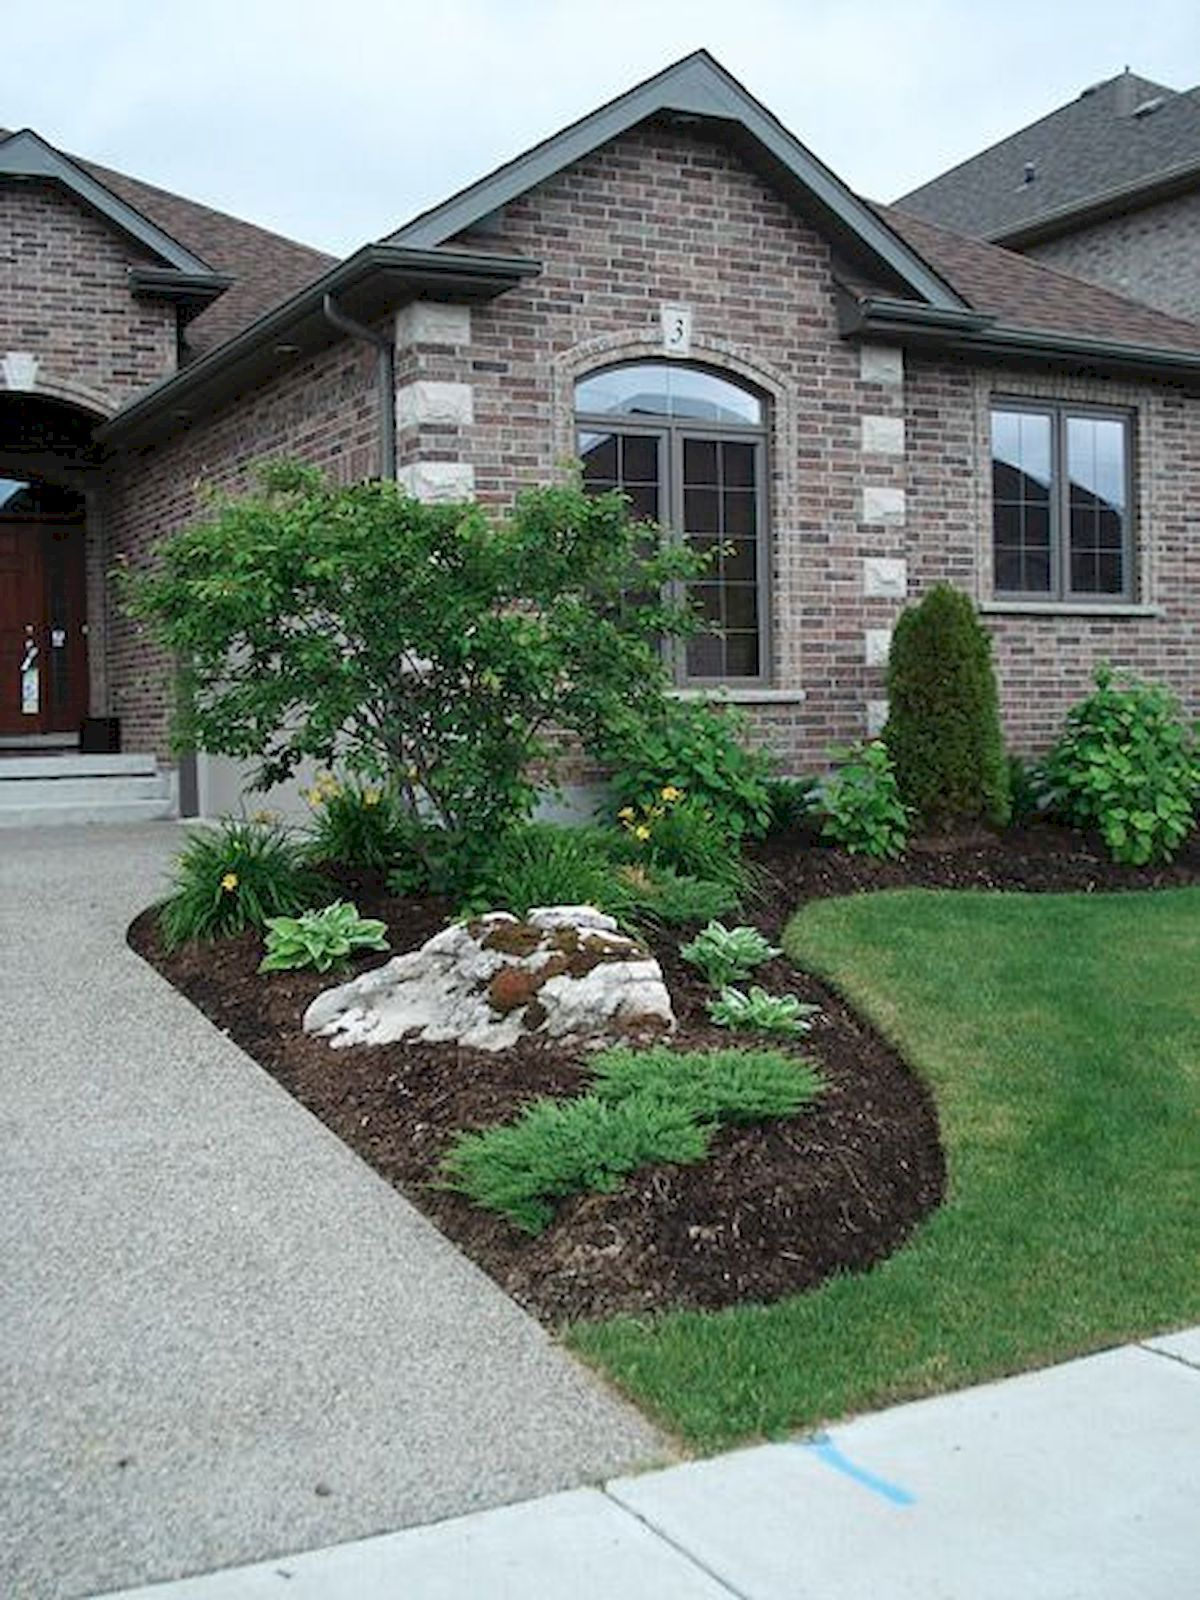 90 Simple And Beautiful Front Yard Landscaping Ideas On A Budget 52 Small Front Yard Landscaping Front Yard Landscaping Front Yard Garden